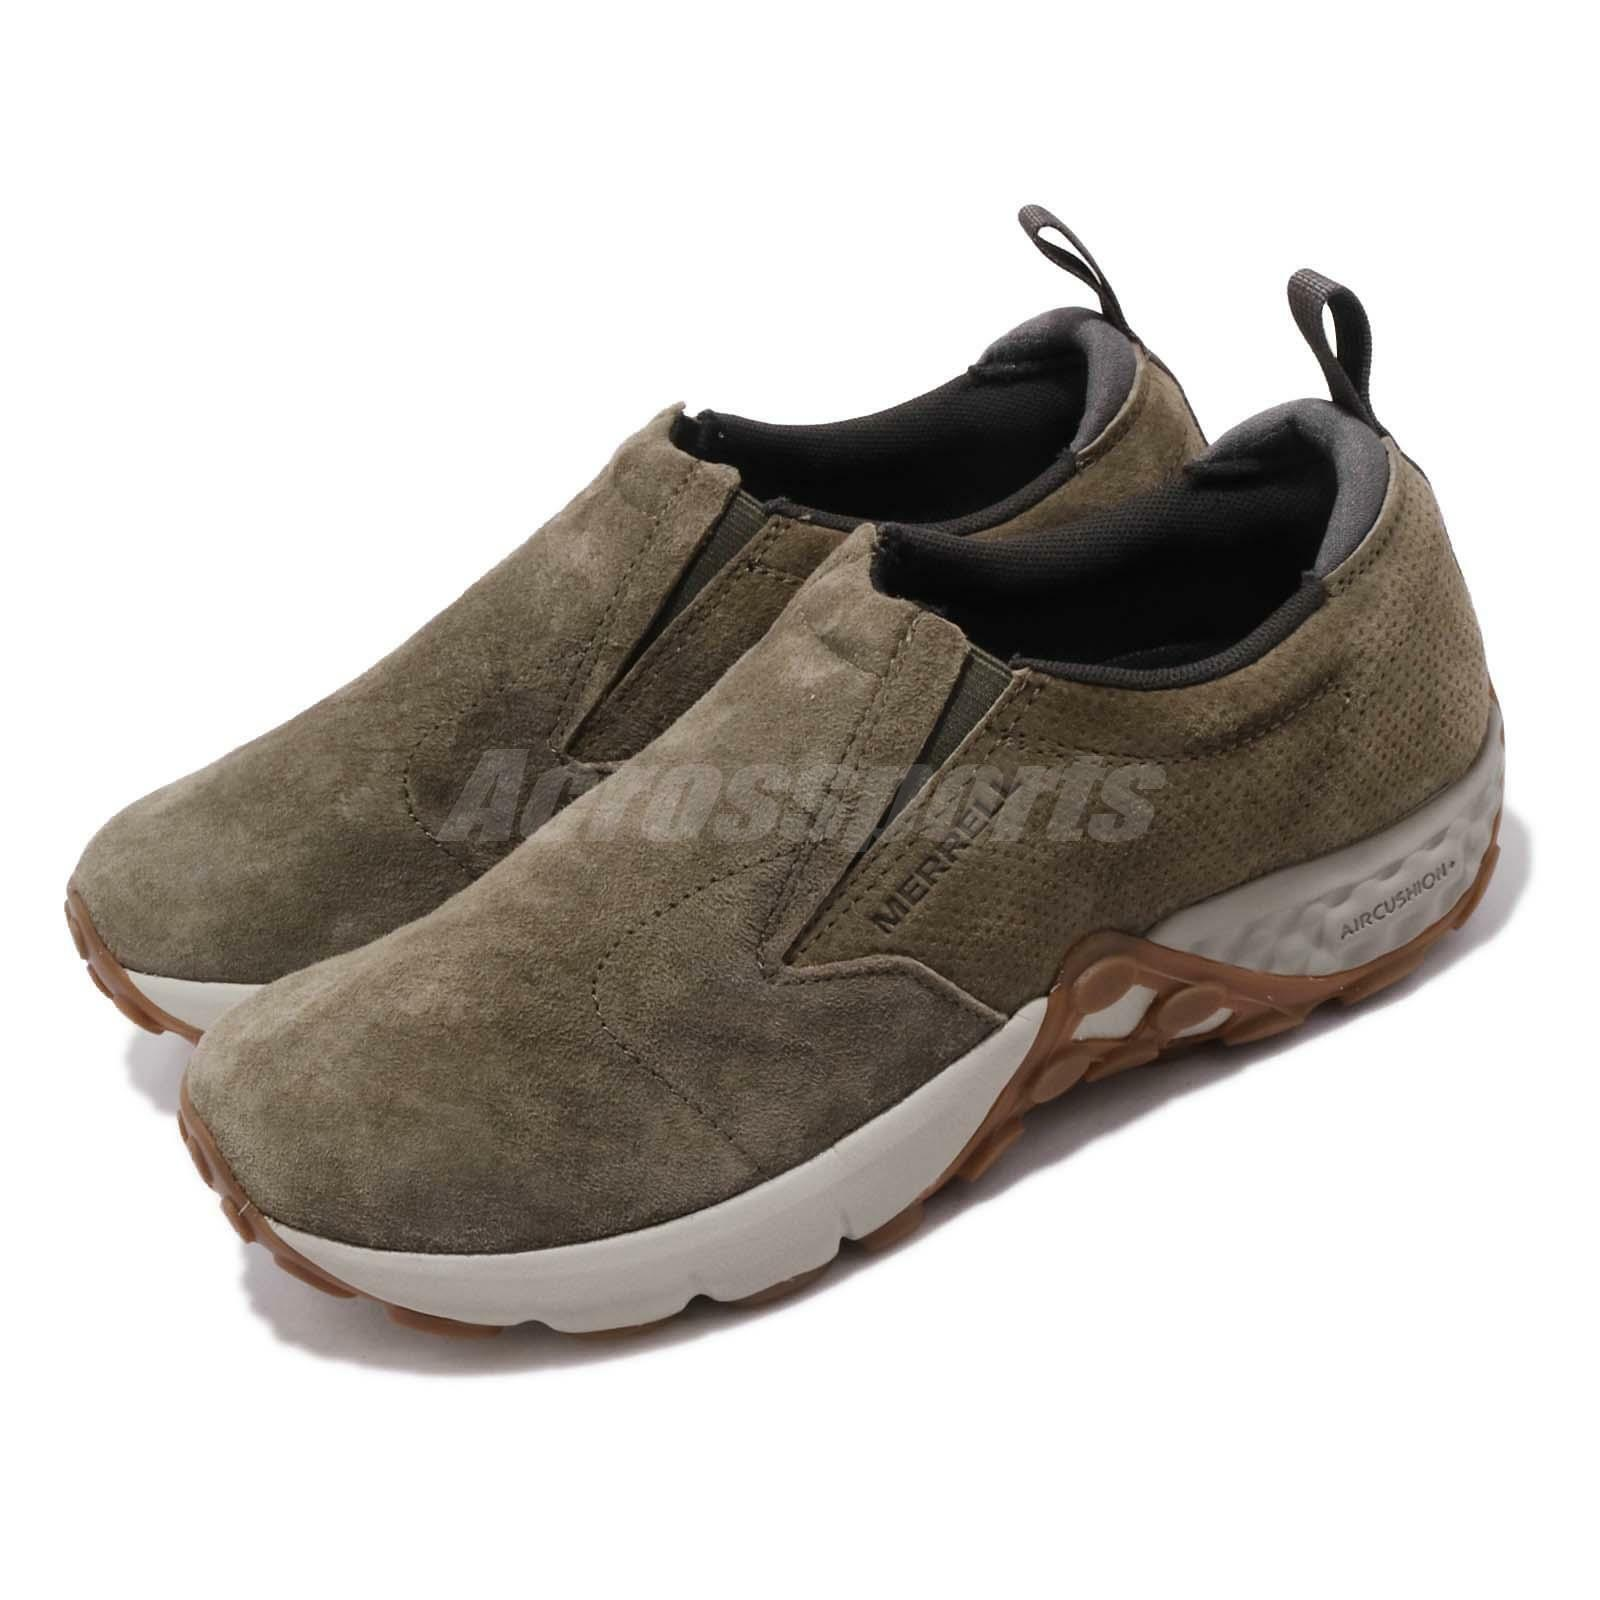 Merrell Jungle Moc AC Dusty Olive Green Green Green Brown  s Casual Shoes Sneakers J91705   Exquise (in) De Fabrication  de5673